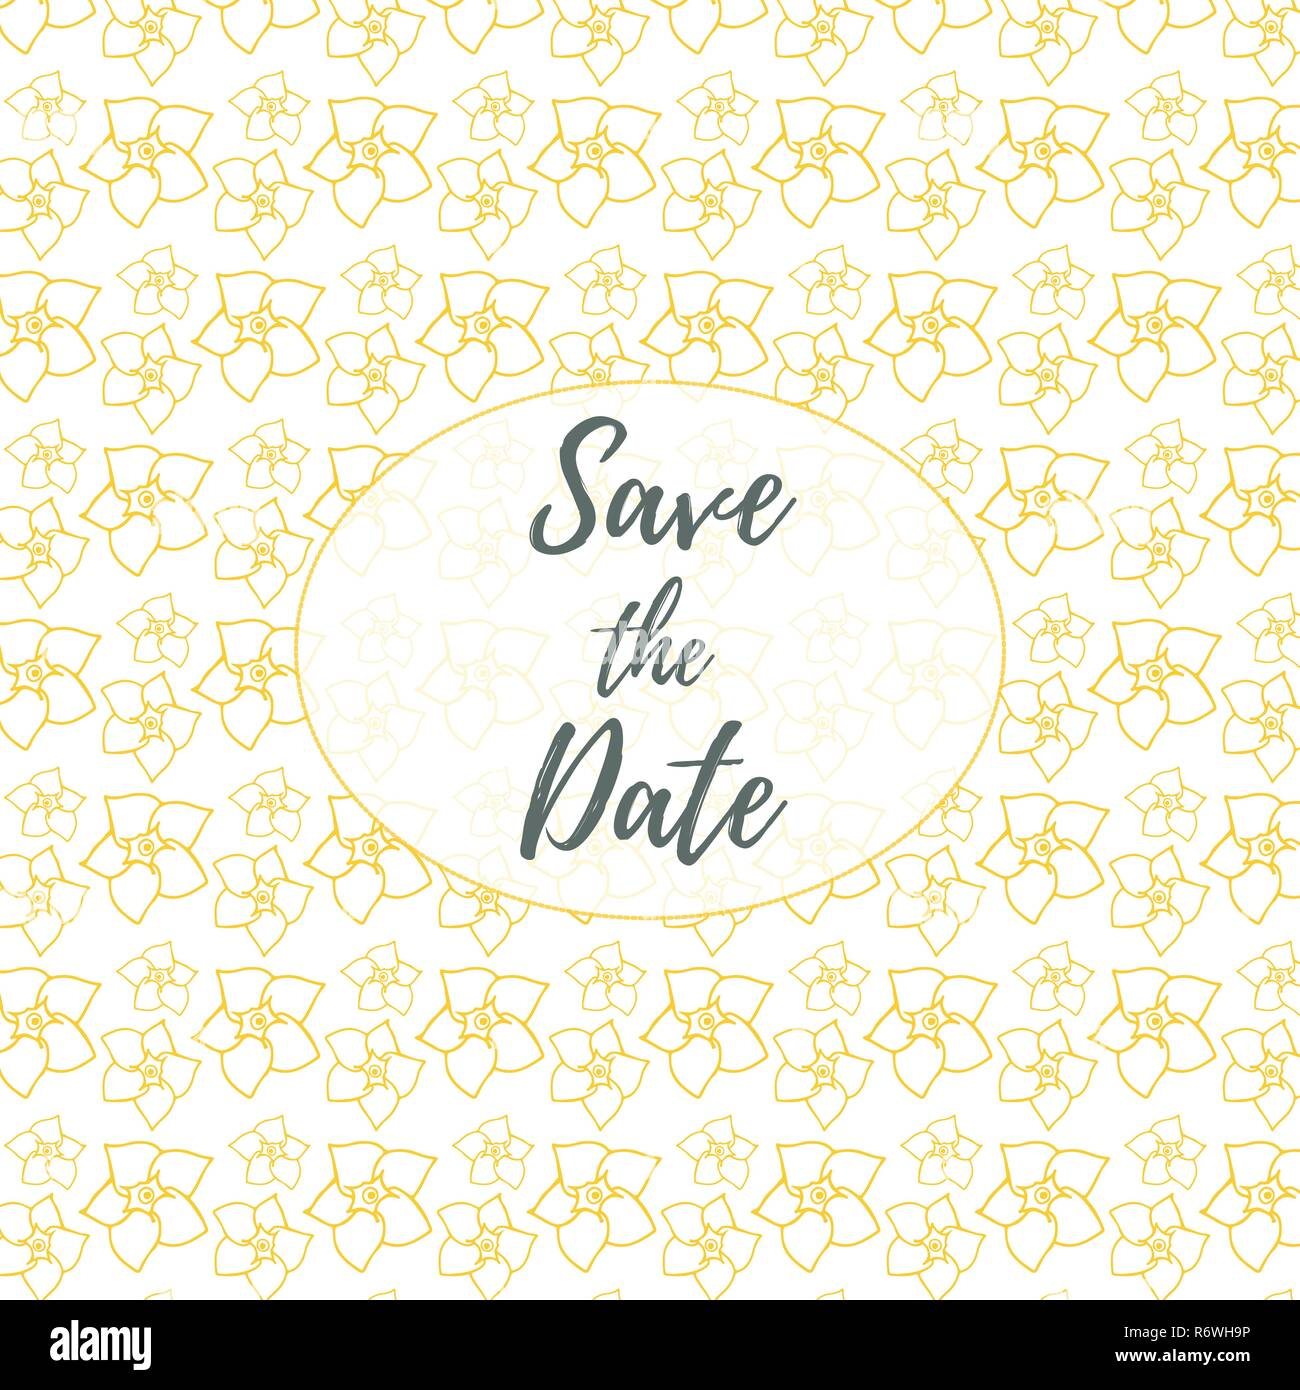 Save The Date Wedding Invitation Card Template With Golden Flowers